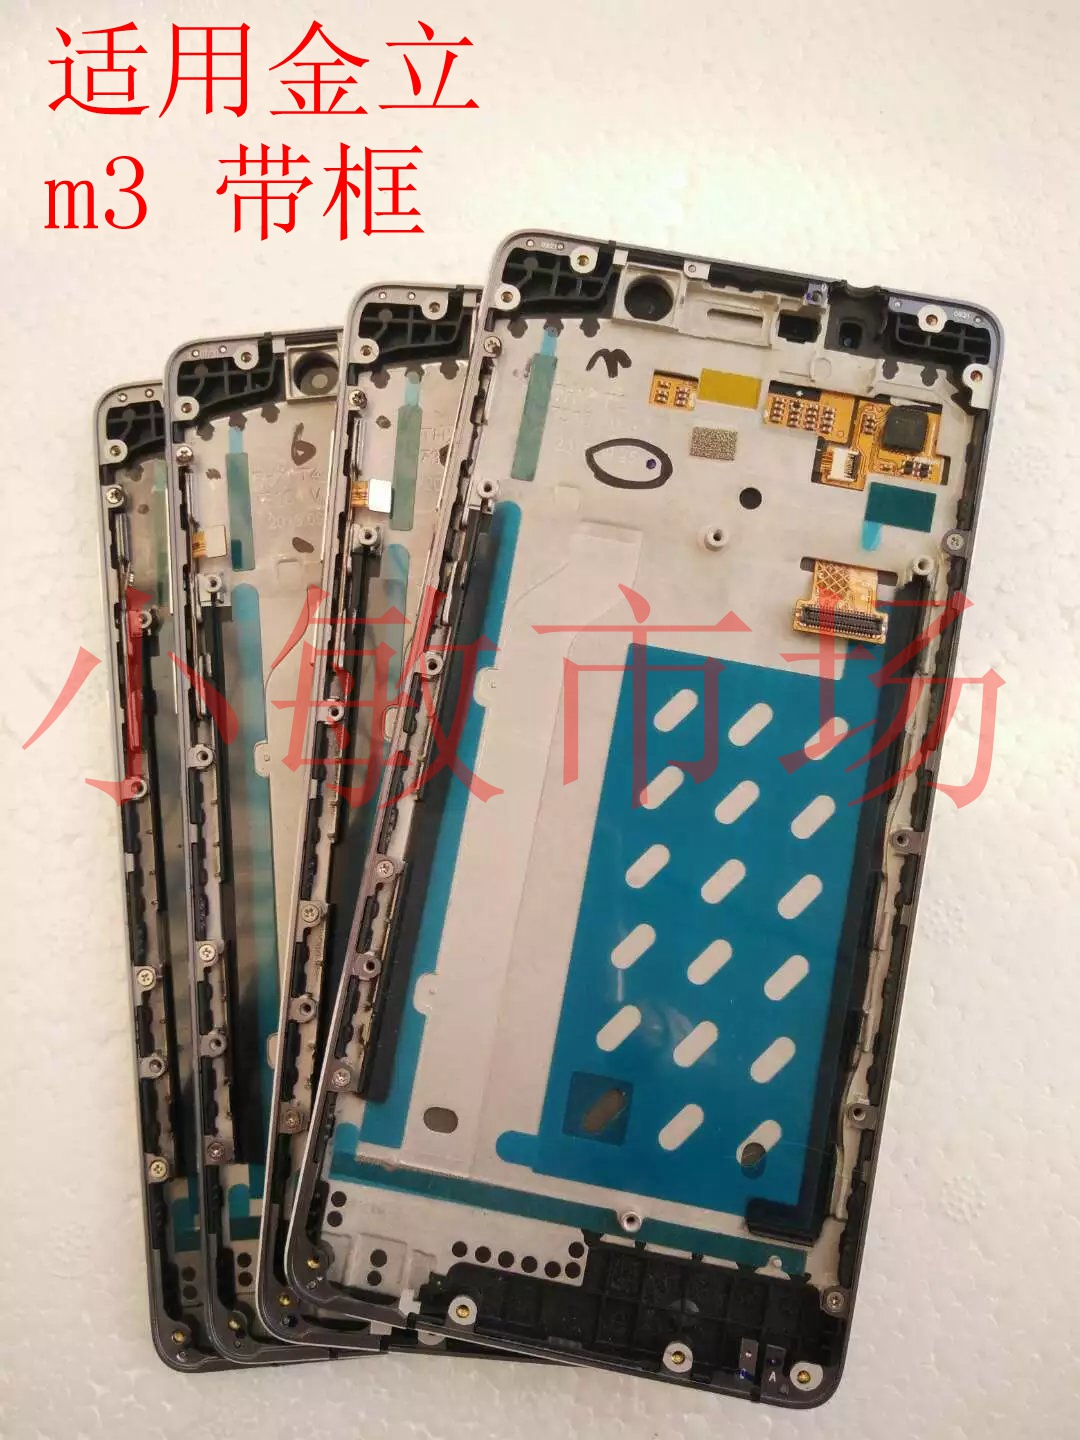 For Jin m3s8s6m6m5plusf303 inside and outside the screen assembly display with a box cover